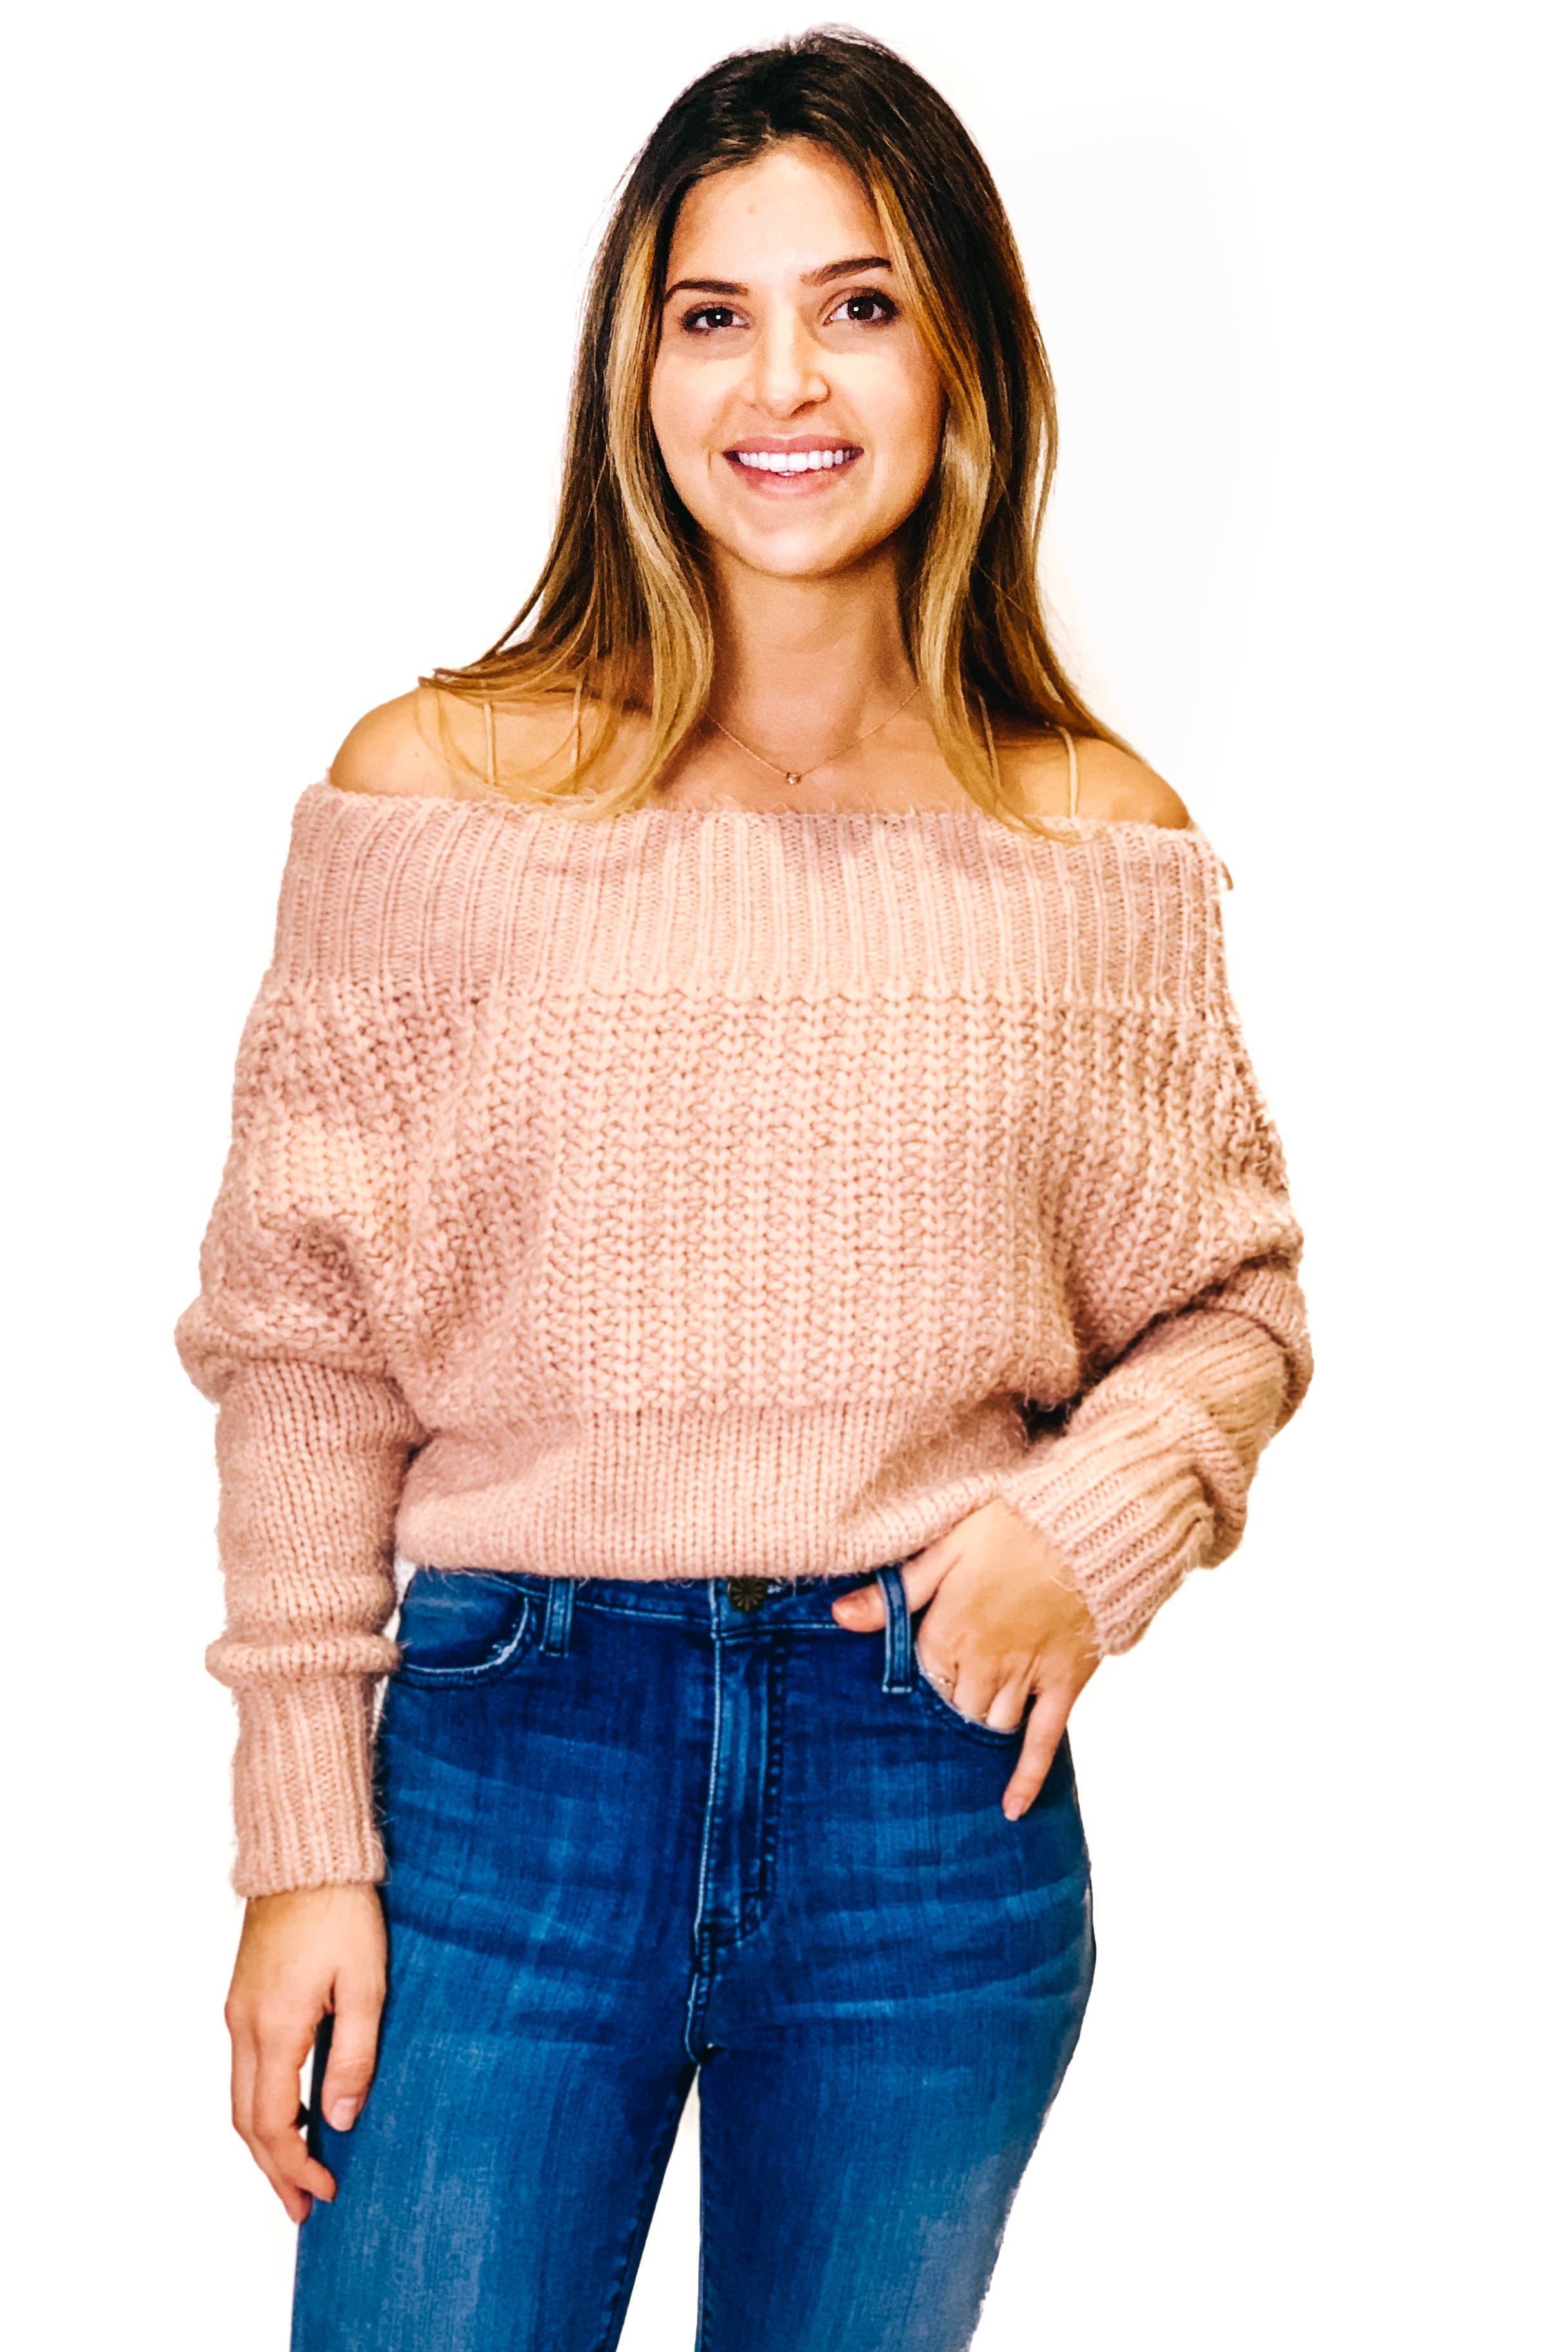 Blush Living in Love Sweater